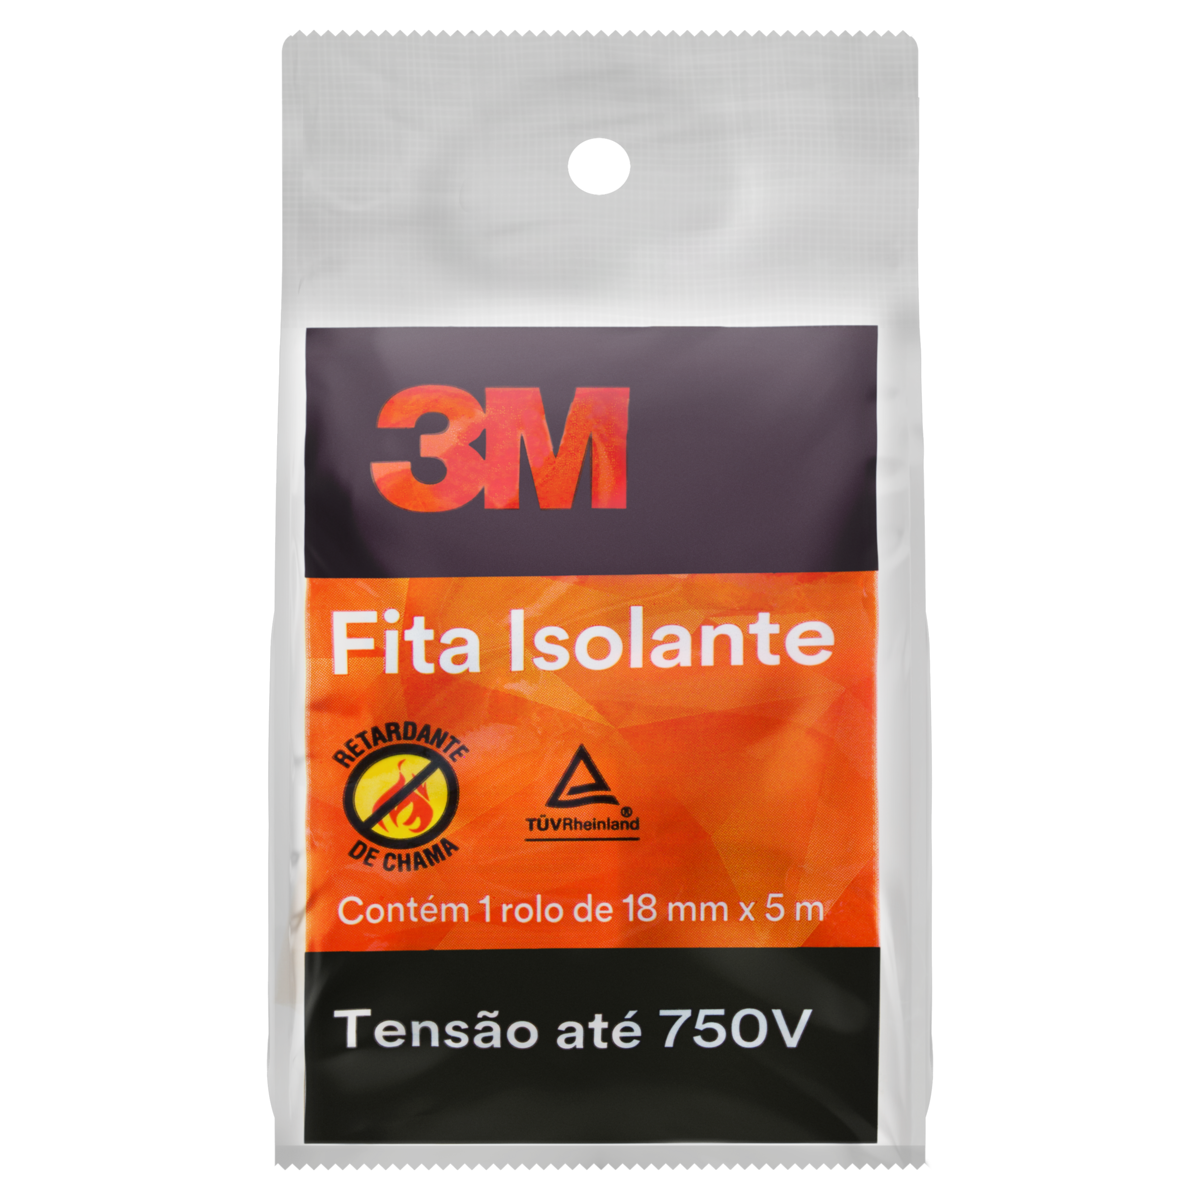 7891040125456 - FITA ISOLANTE SCOTCH 3M 18X5M